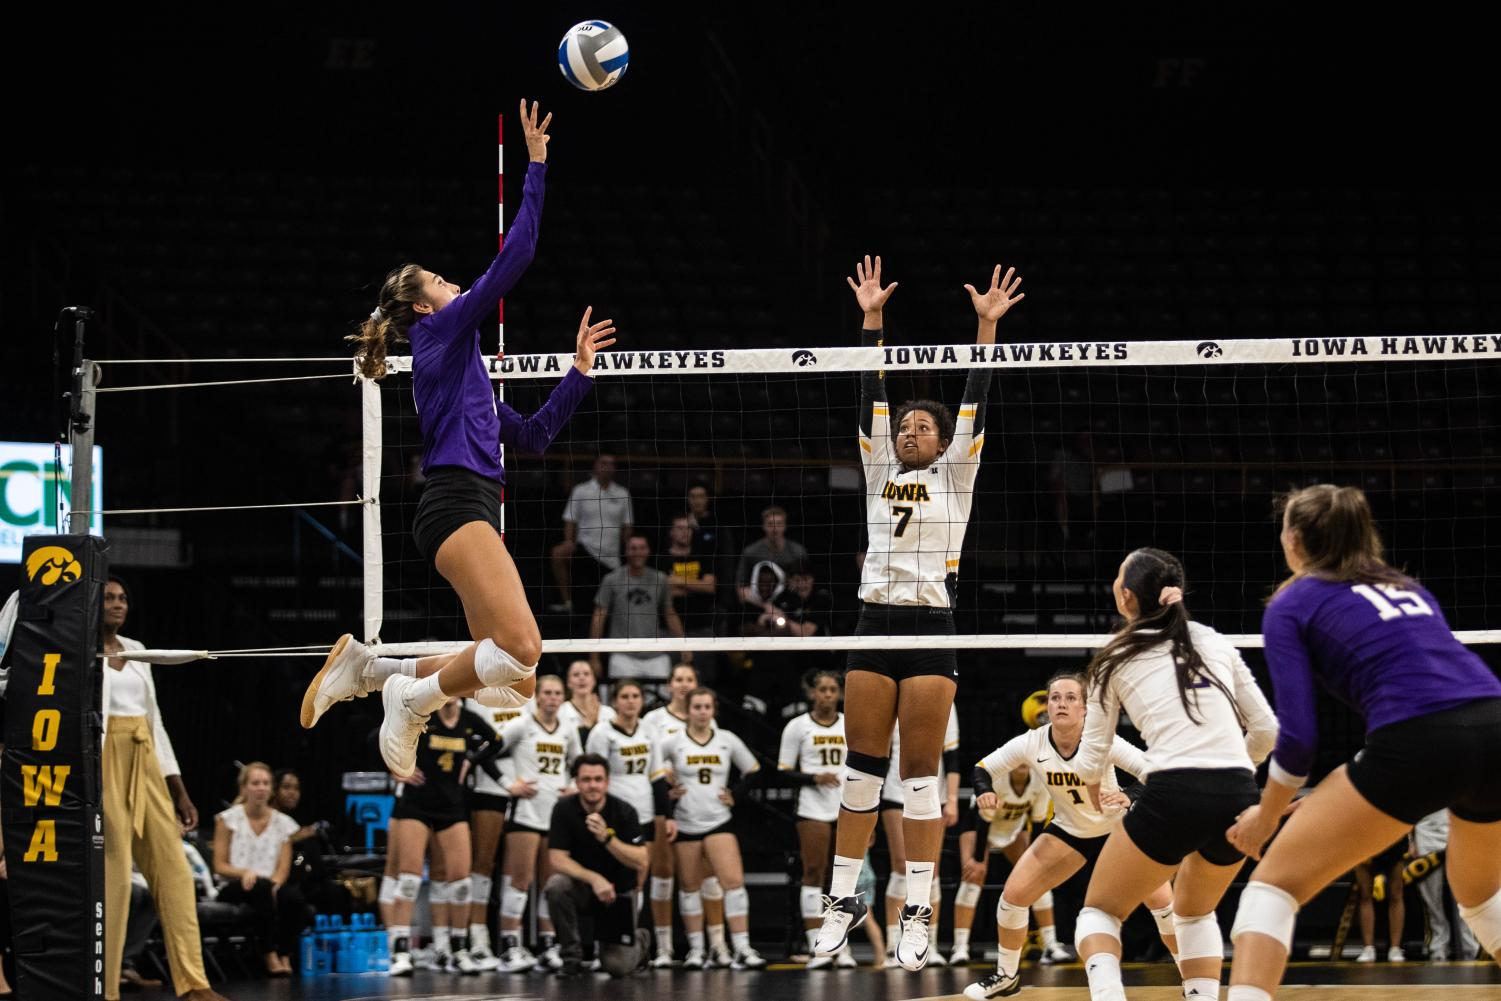 Iowa+setter+Brie+Orr+jumps+to+block+a+kill+during+a+volleyball+match+between+Iowa+and+Washington+at+Carver+Hawkeye+Arena+on+Saturday%2C+September+7%2C+2019.+The+Hawkeyes+were+defeated+by+the+Huskies%2C+3-1.